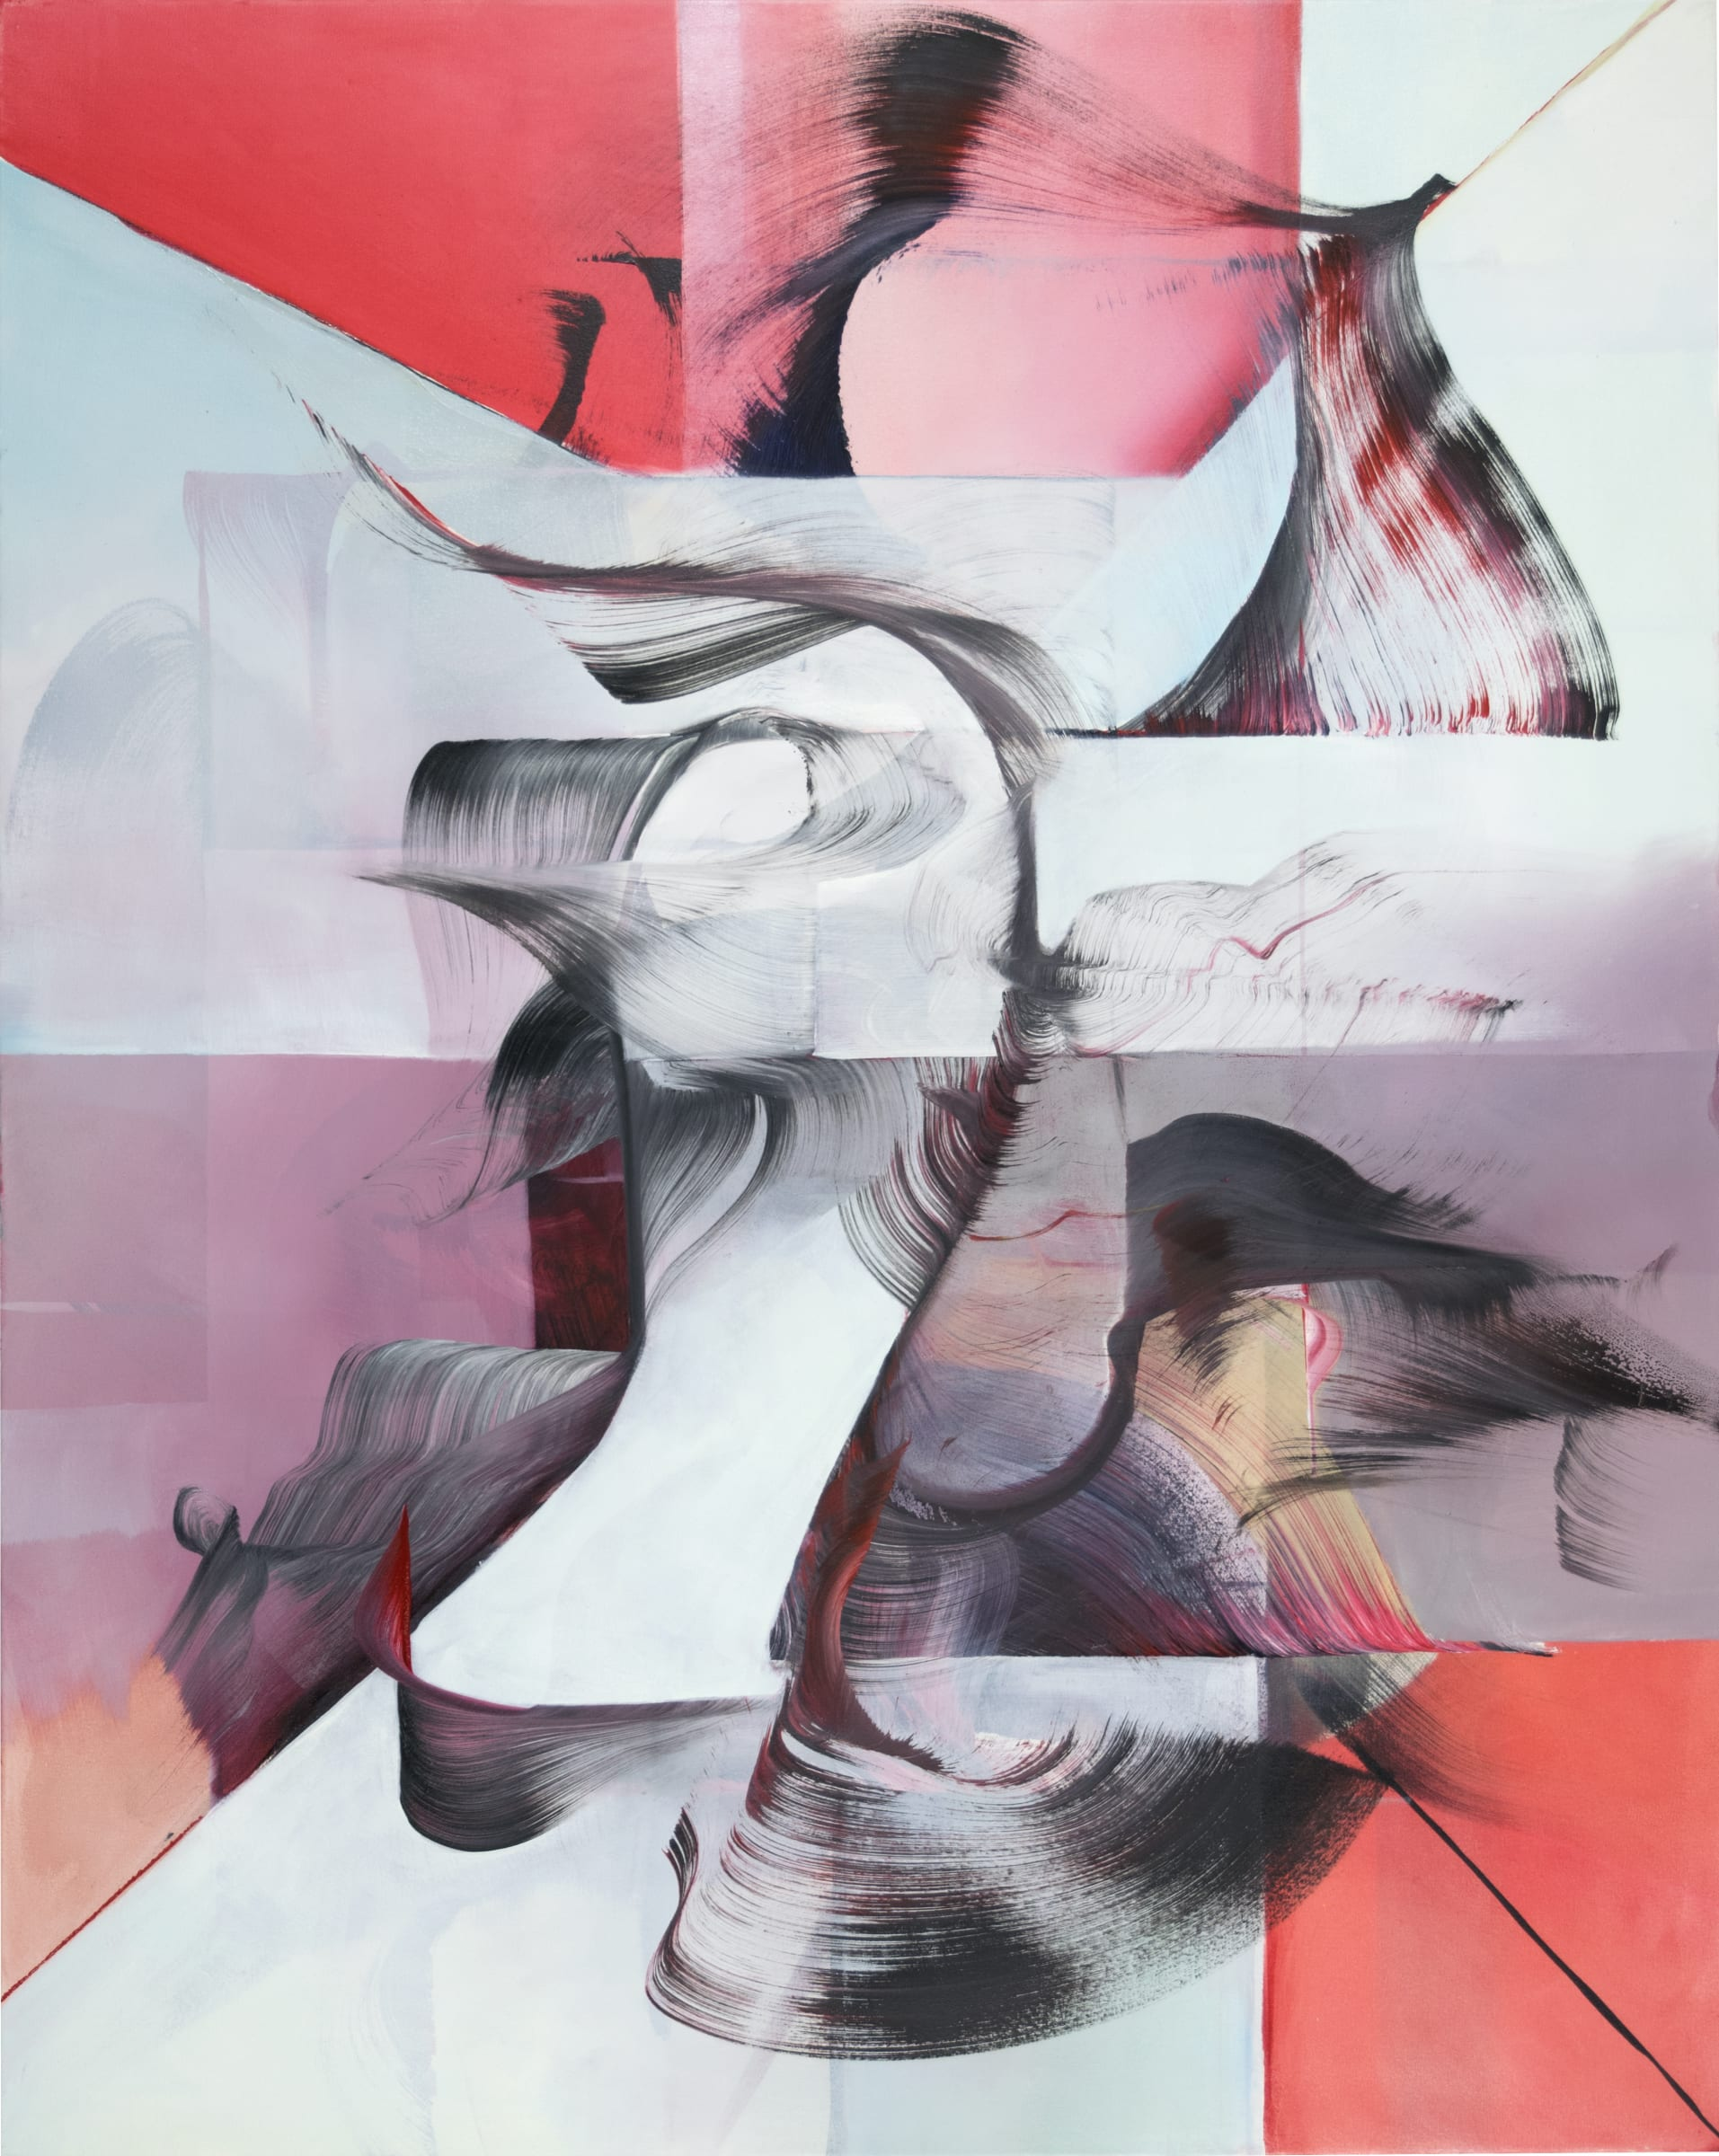 "<span class=""link fancybox-details-link""><a href=""/artists/71-laina-terpstra/works/819-laina-terpstra-untitled-13/"">View Detail Page</a></span><div class=""artist""><strong>Laina Terpstra</strong></div> <div class=""title""><em>Untitled 13</em></div> <div class=""medium"">Oil on Canvas</div> <div class=""dimensions"">48 x 60 inches</div>"